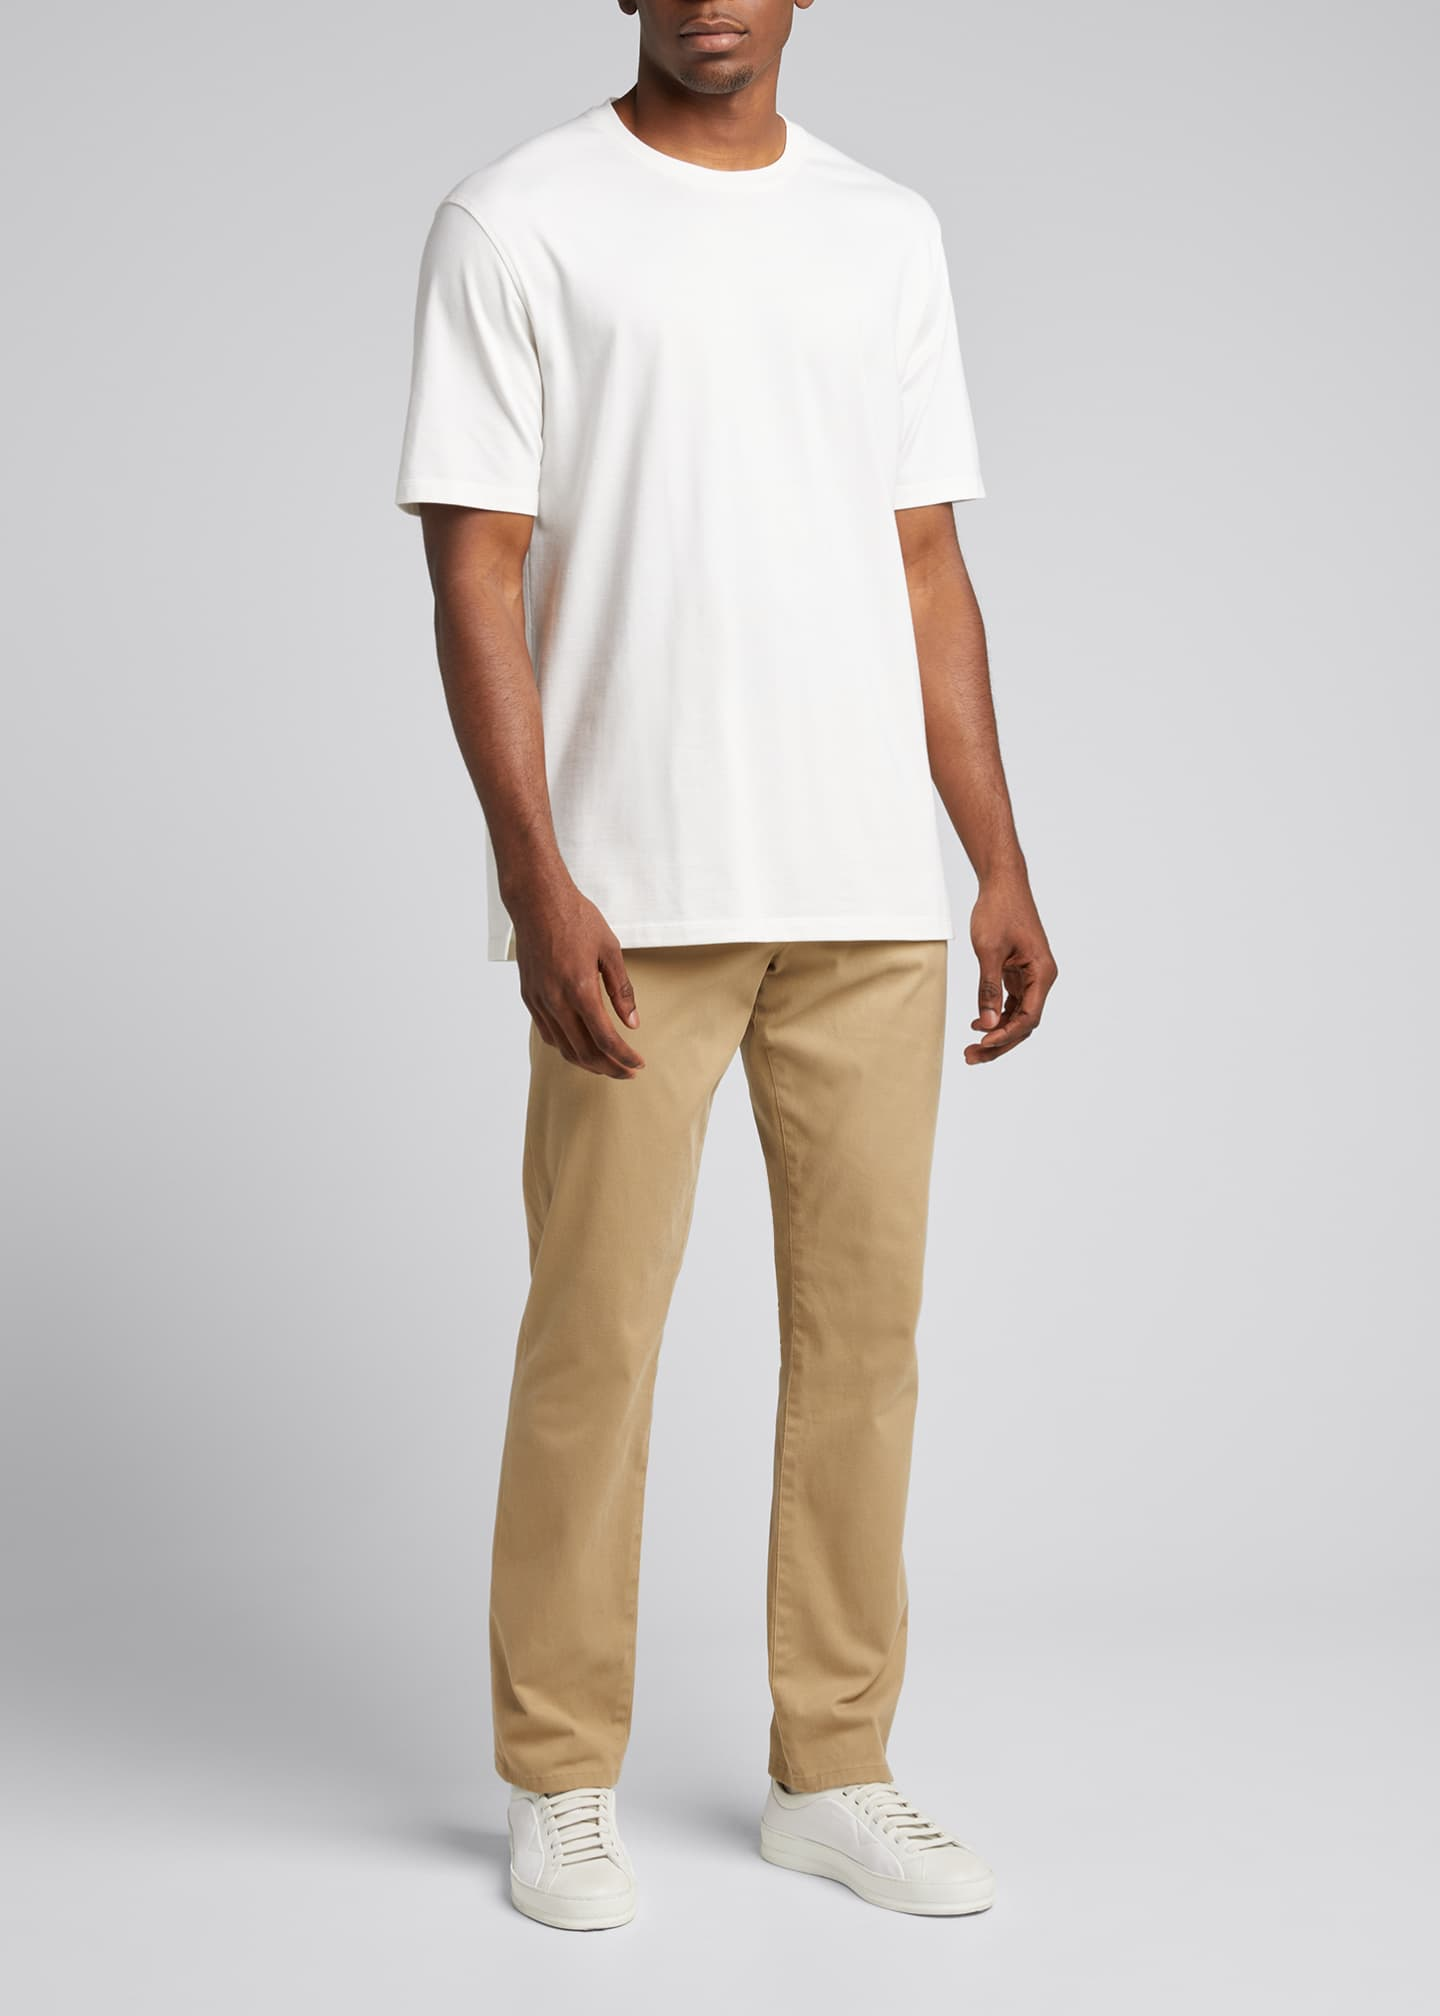 Image 1 of 5: Men's Solid Stretch Tee